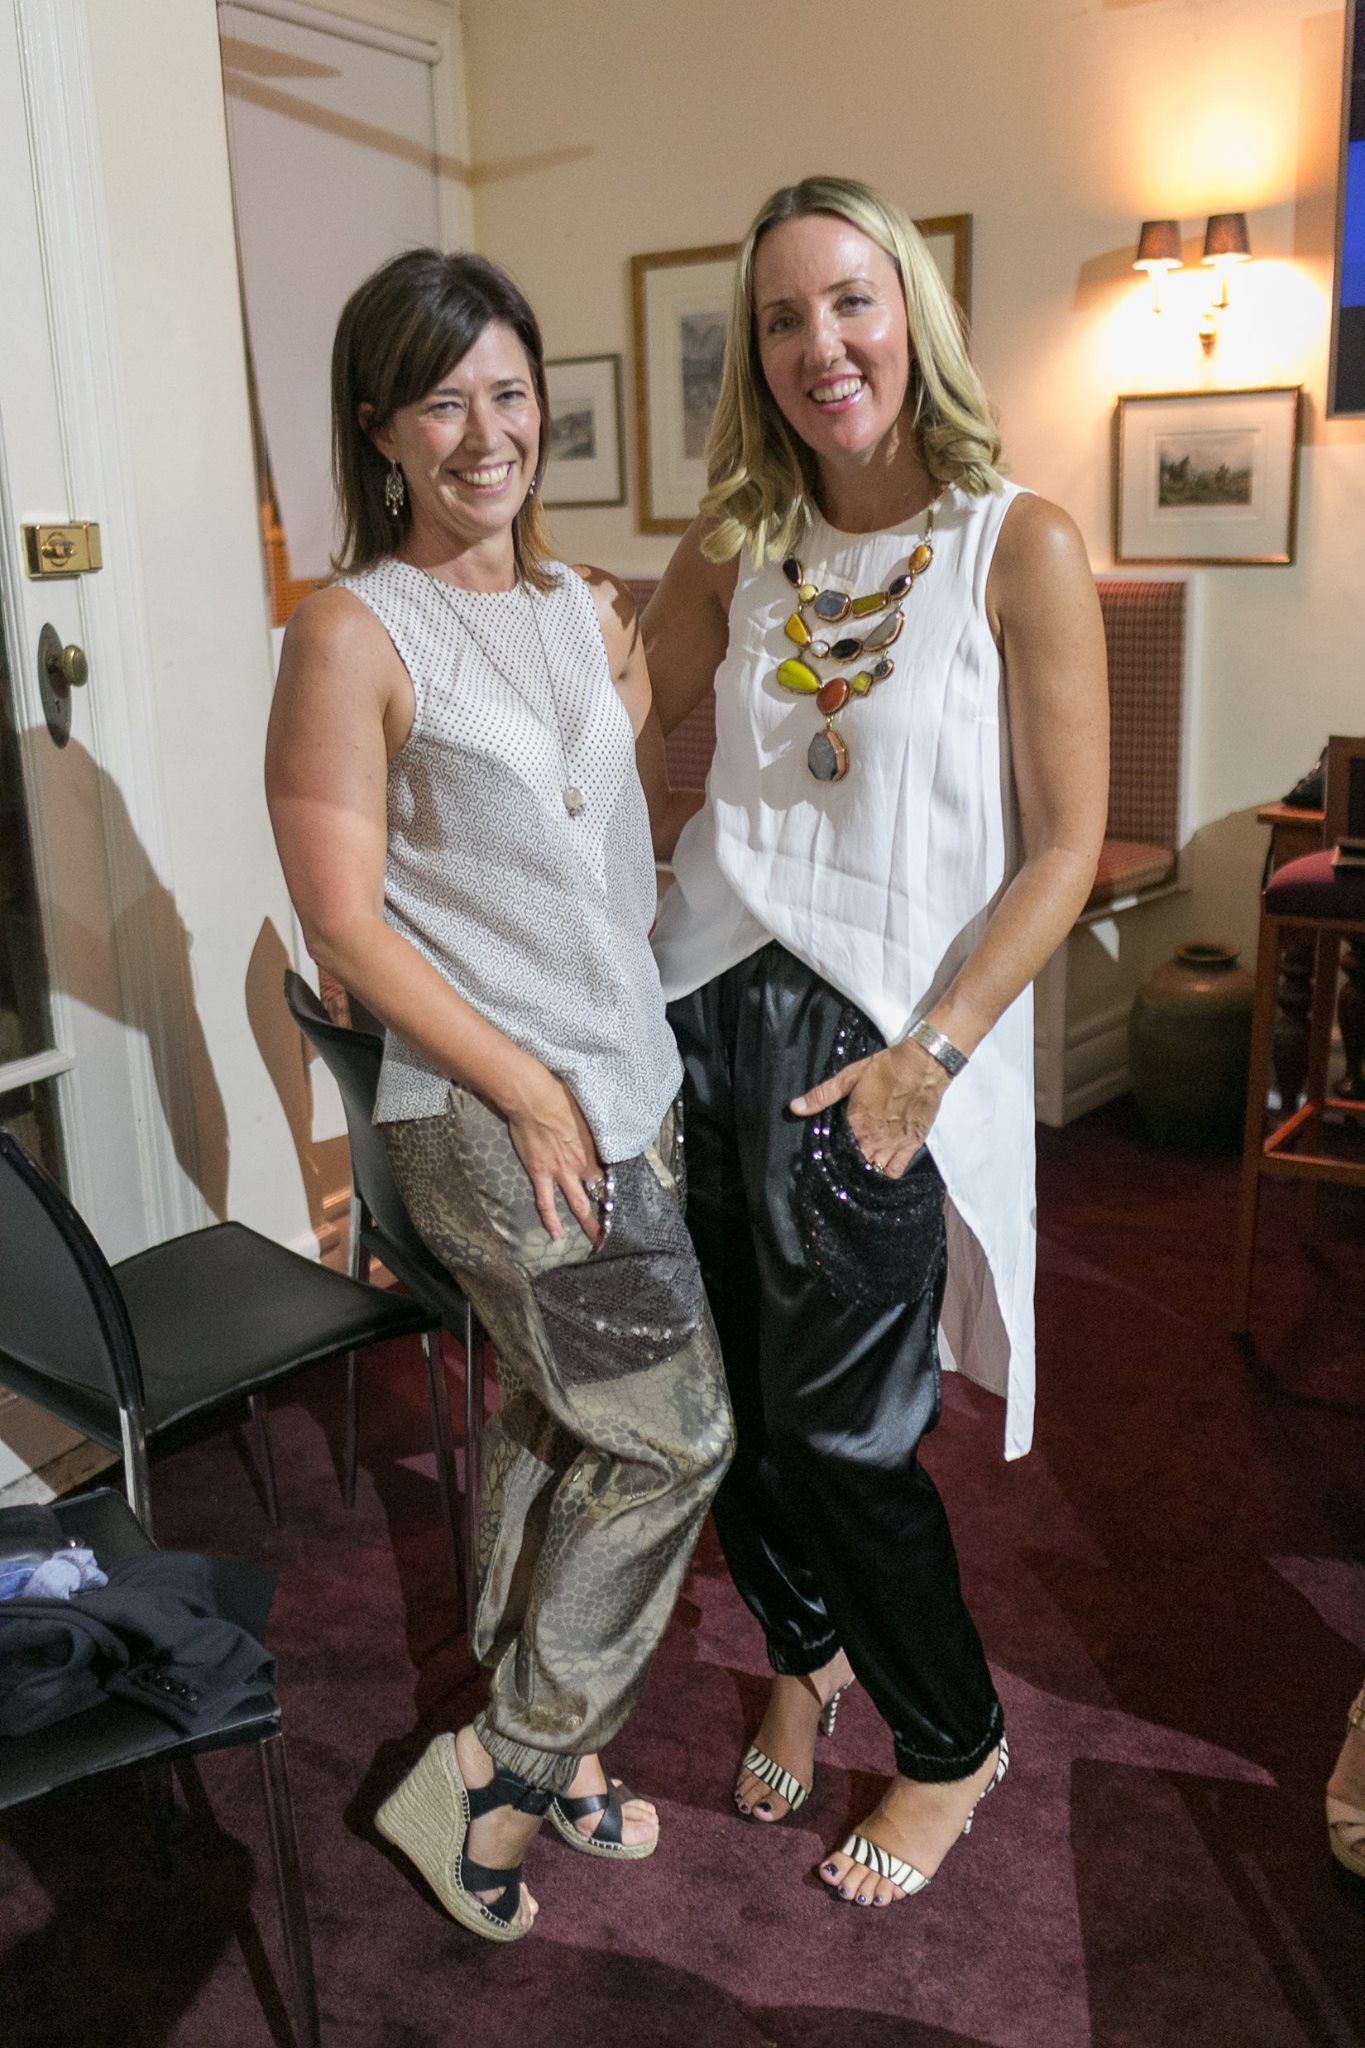 Winner of the giveaway, artist Marie Schlederer wearing her new #partypocketpants! Modelling here with Kate Sutton